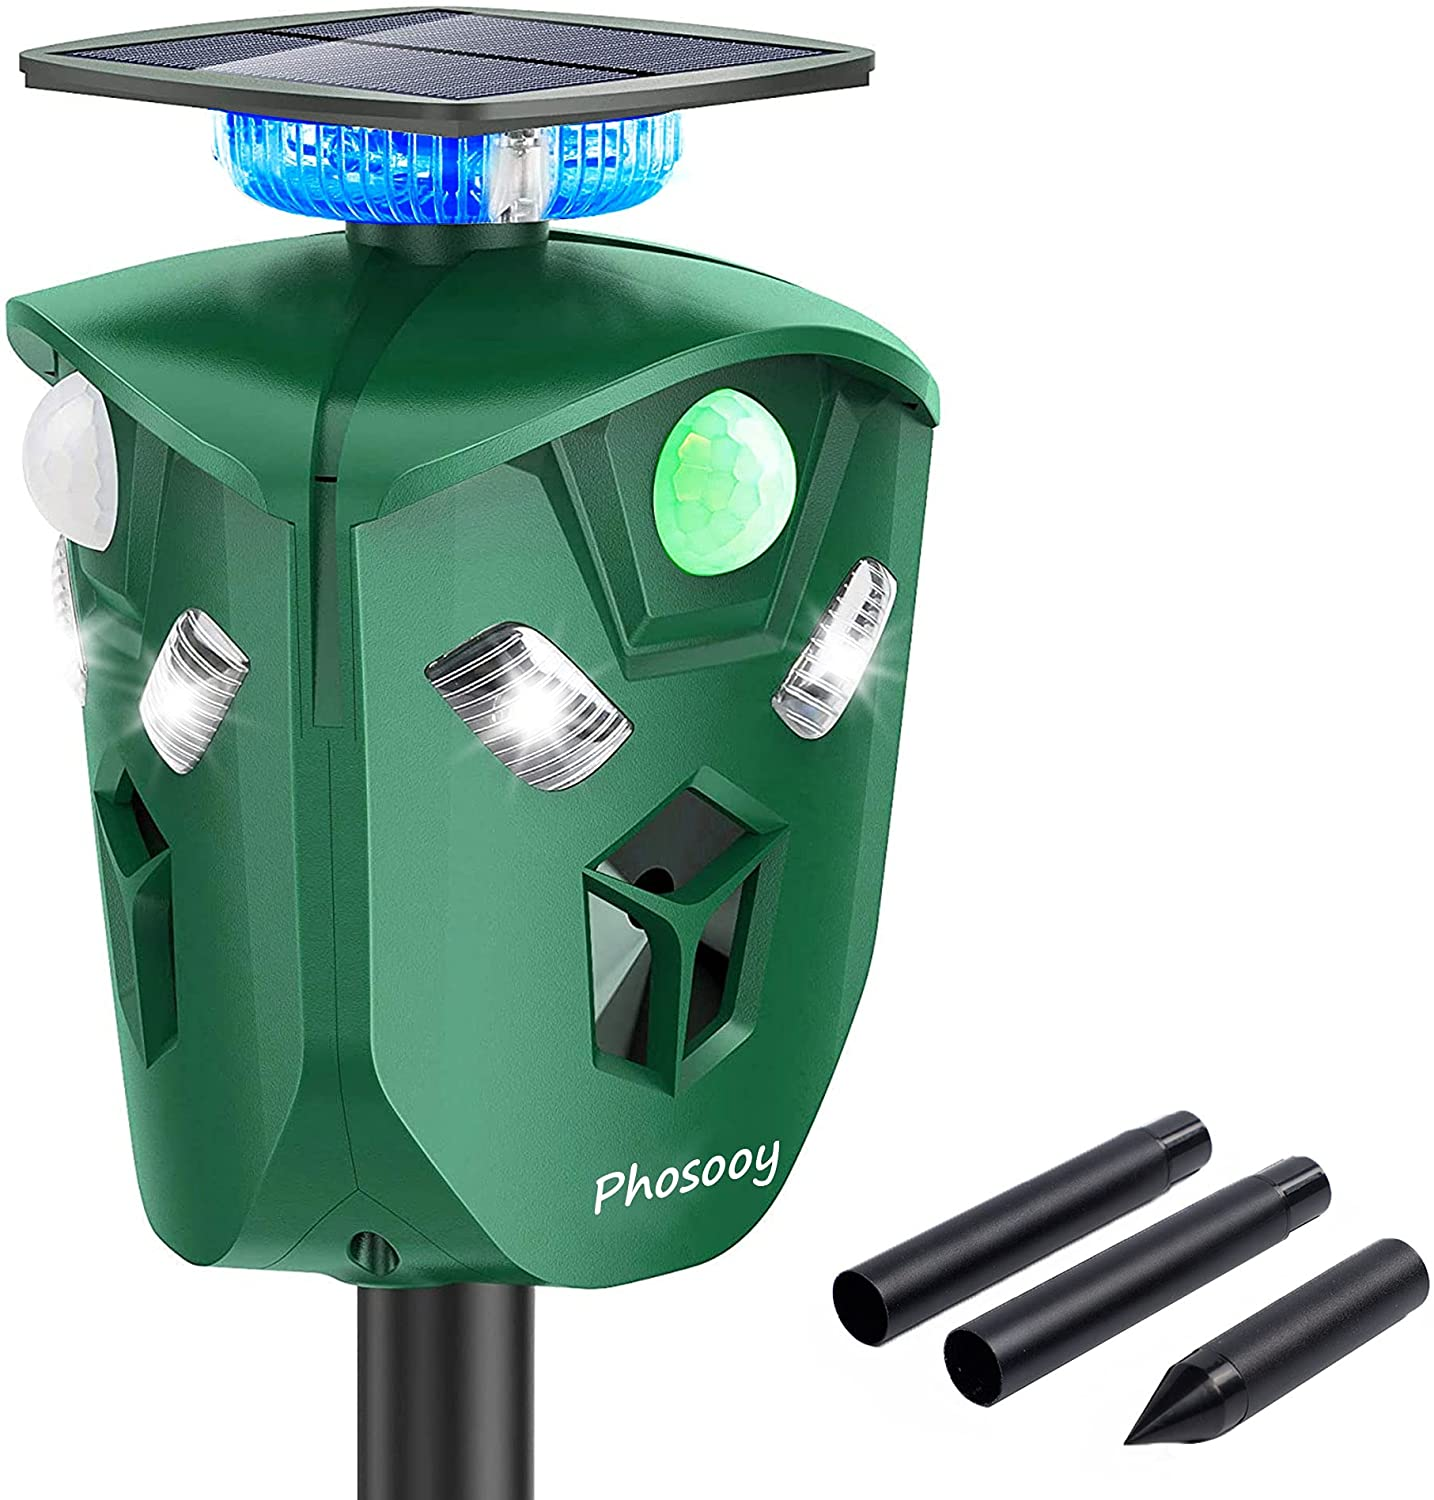 Phosooy Ultrasonic Animal Repeller, 360 Degree Solar Powered Rodent Repeller with Motion Activated Flashing LED Light, Repel Dogs, Wild Cat, Raccoon, Rabbit, Deer & More